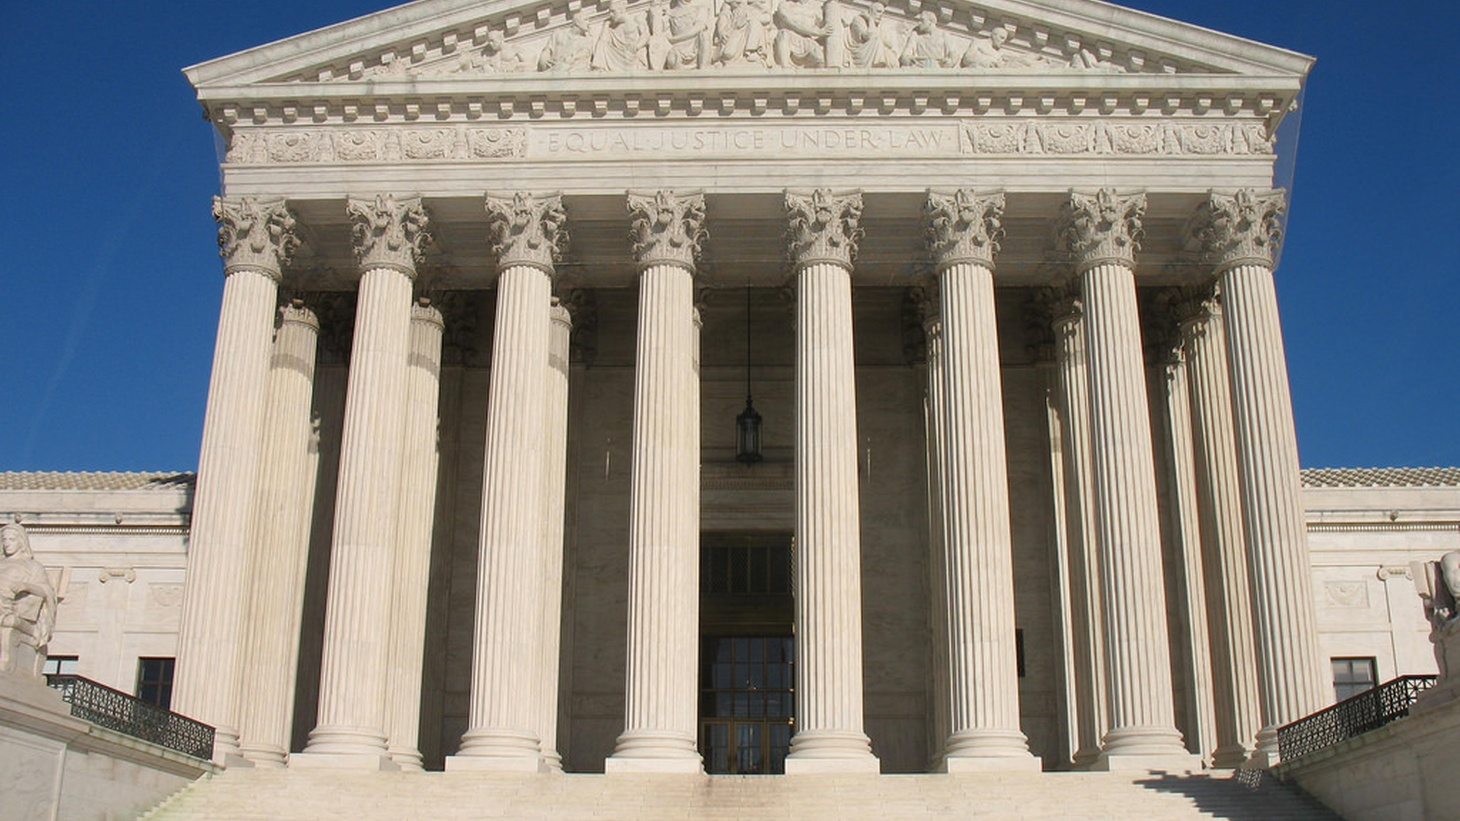 The U.S. Supreme Court ruled Monday that police can seize evidence during unconstitutional traffic stops if suspects have outstanding arrest warrants. We look at the impacts of the case and Justice Sonia Sotomayor's blistering dissent.